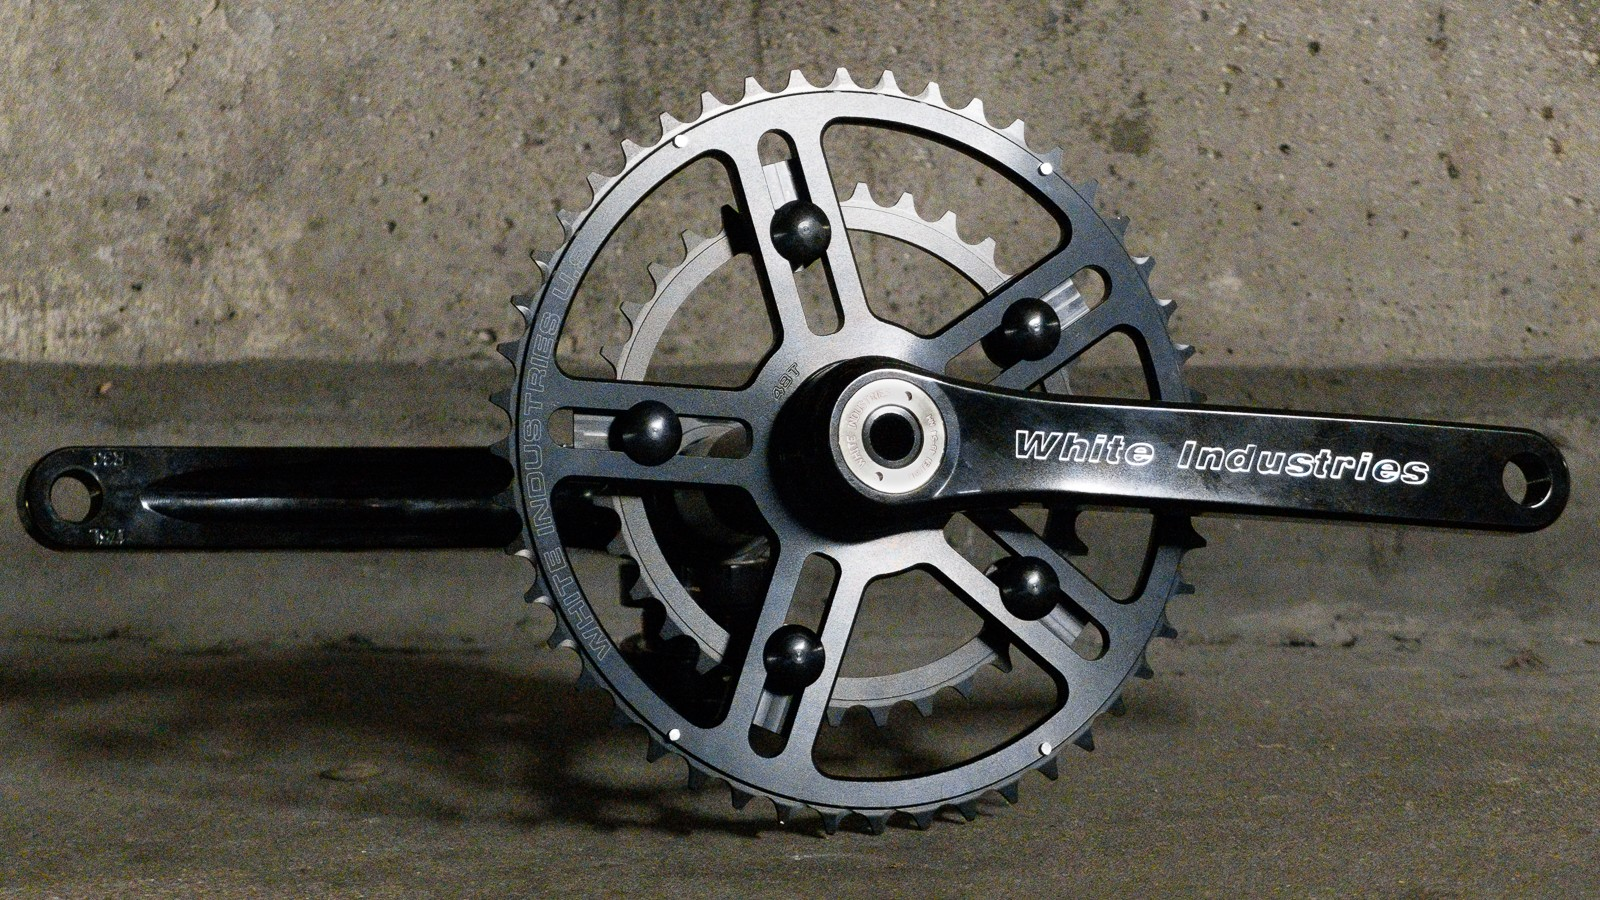 White Industries has made the move towards a Hollow Tech style system with its new R30 cranks